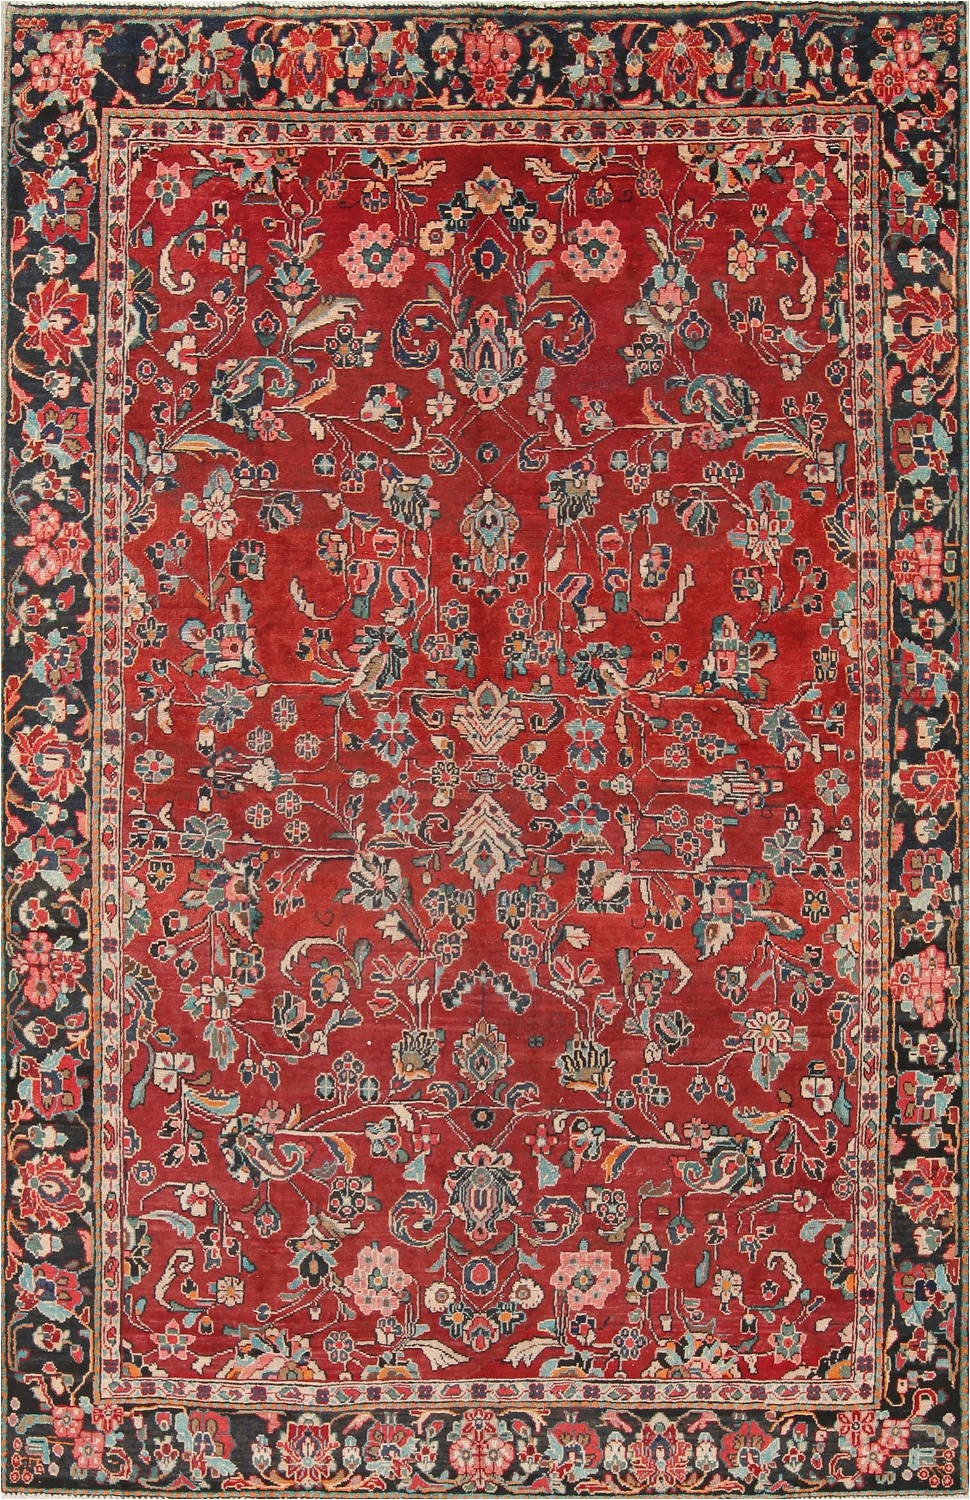 Hand Knotted Persian area Rug Antique All Over Floral Red Mahal Persian Hand Knotted 7×11